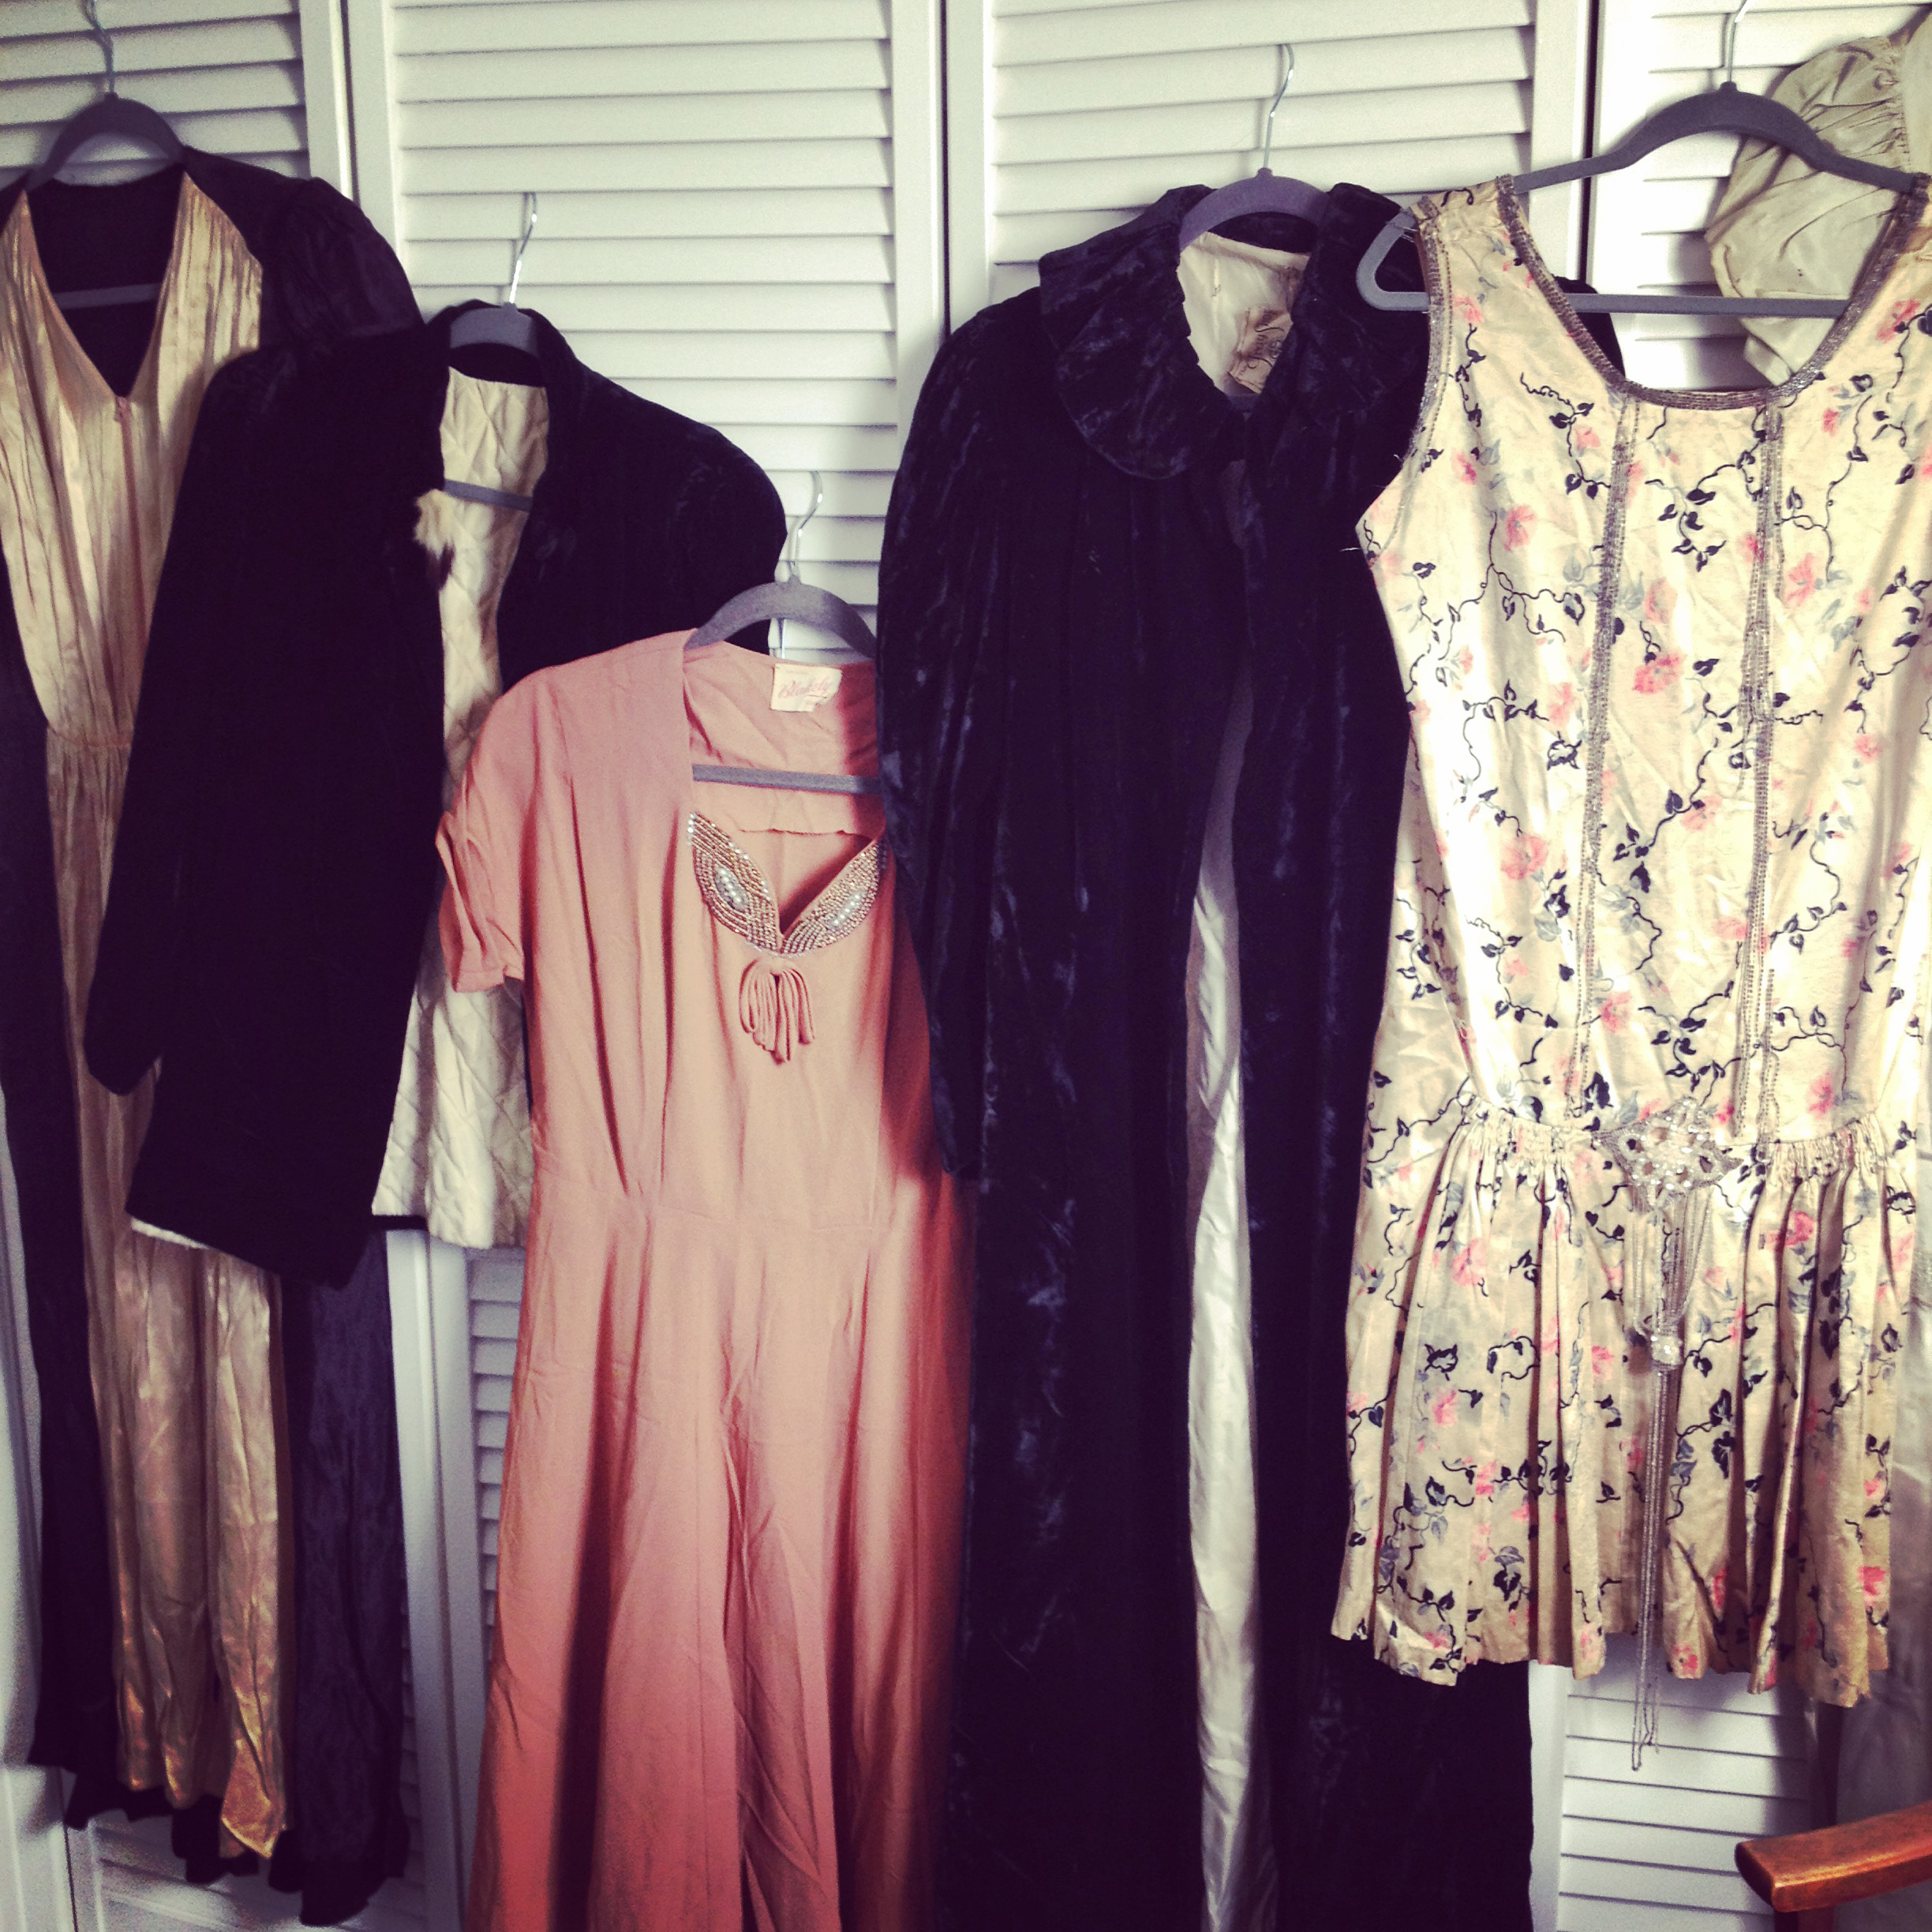 Here is part of the collection of vintage dresses and coats that I was gifted.  The dress I used is on the far left.